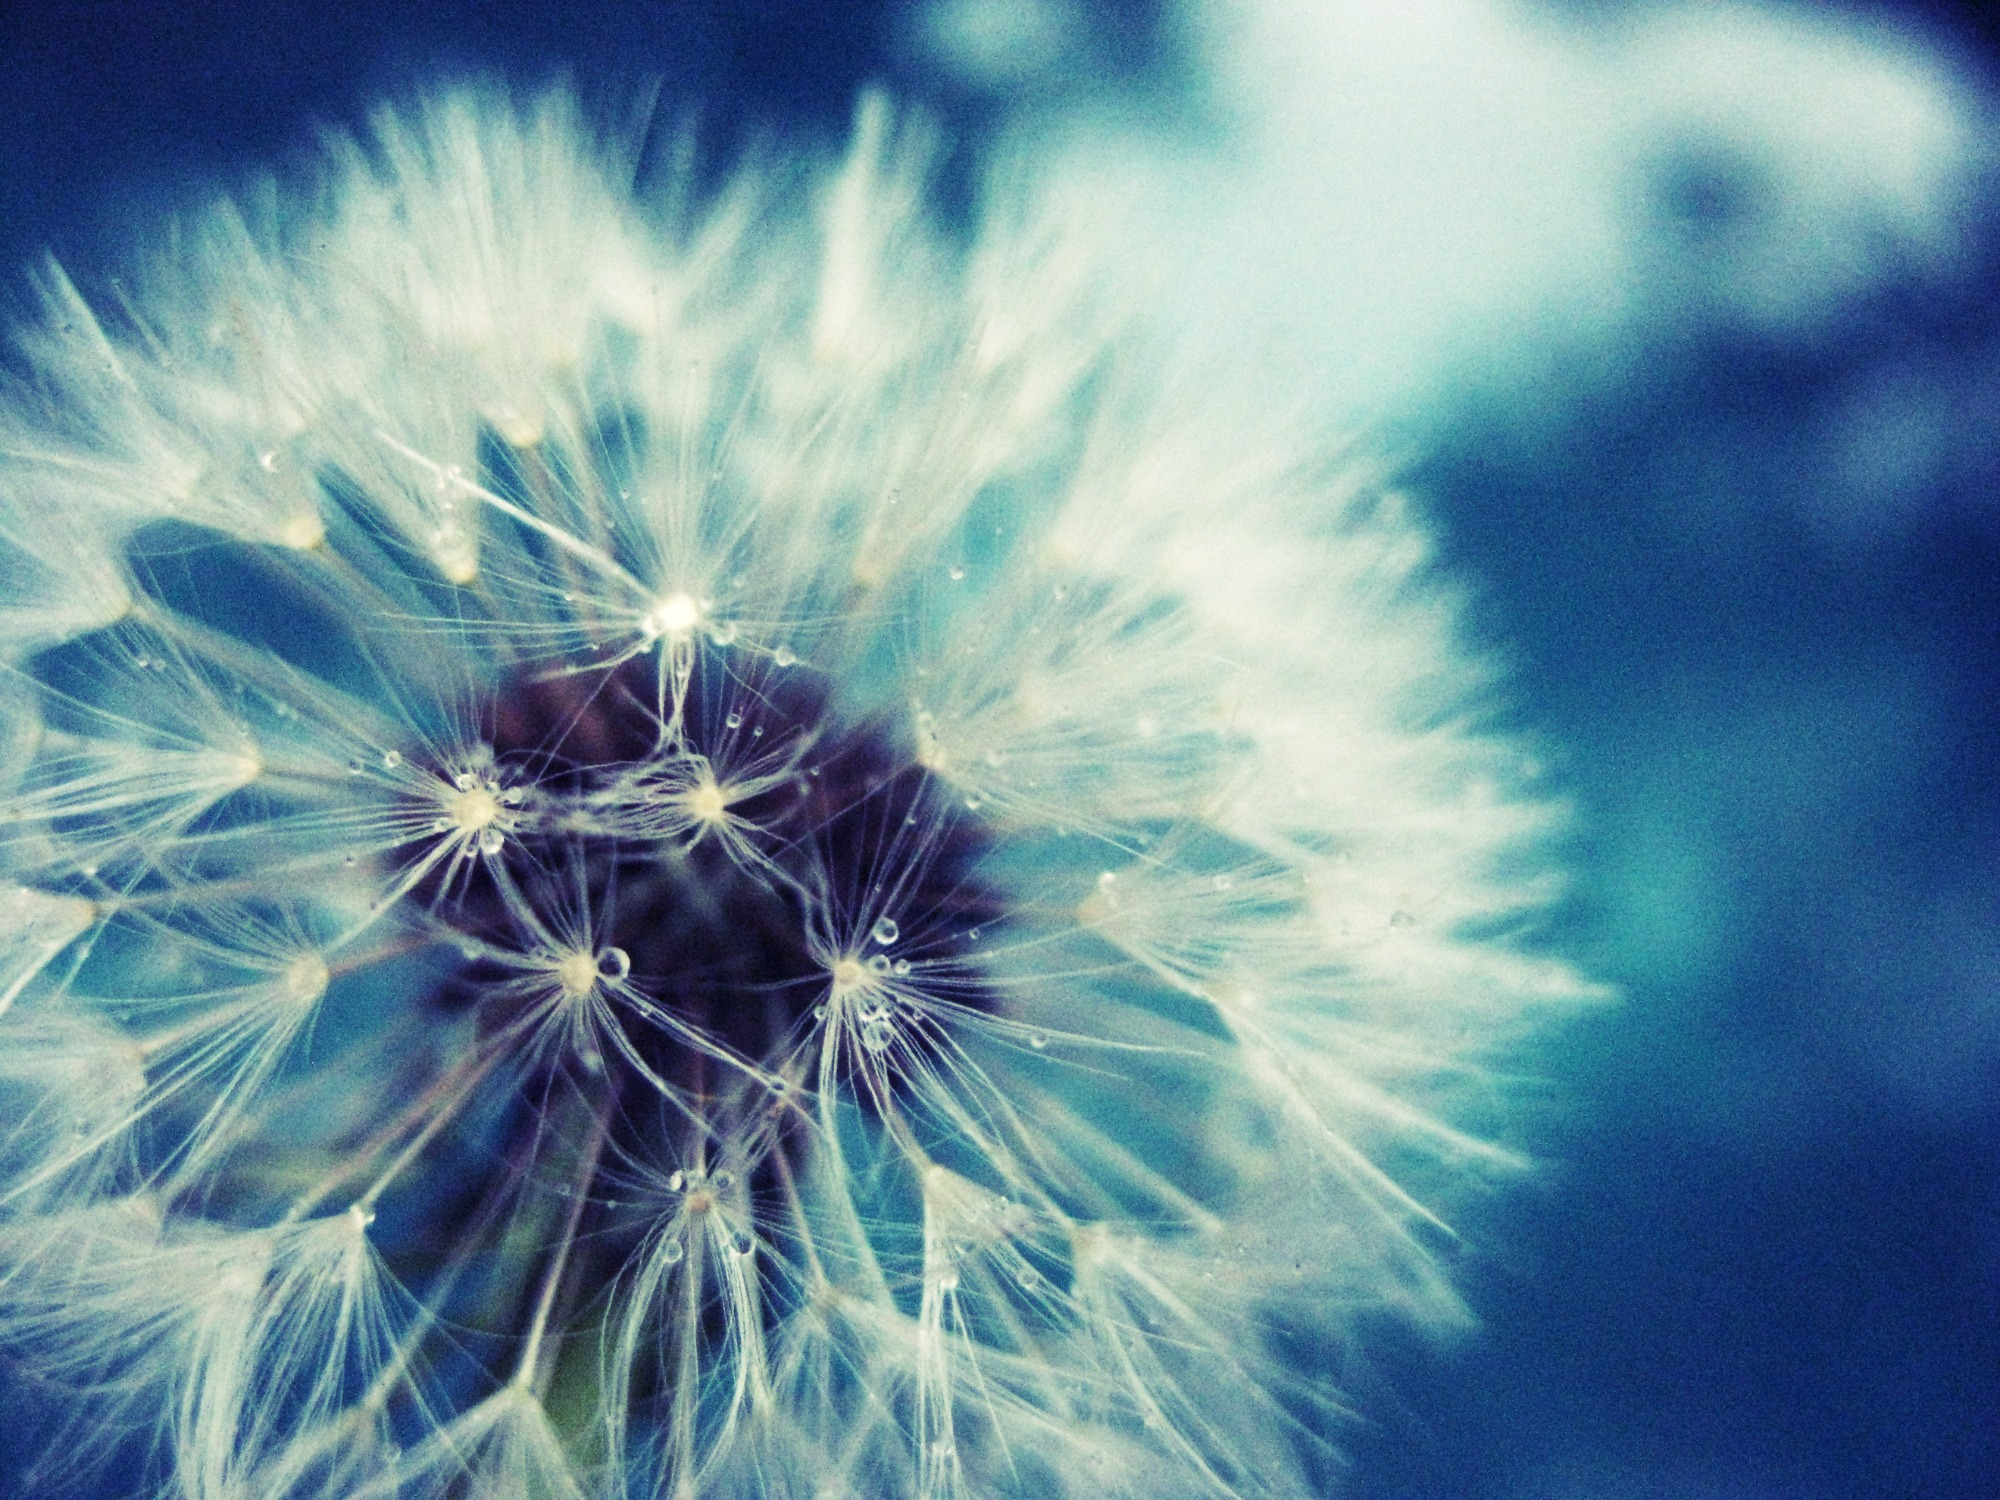 Dandelion Wallpapers High Quality